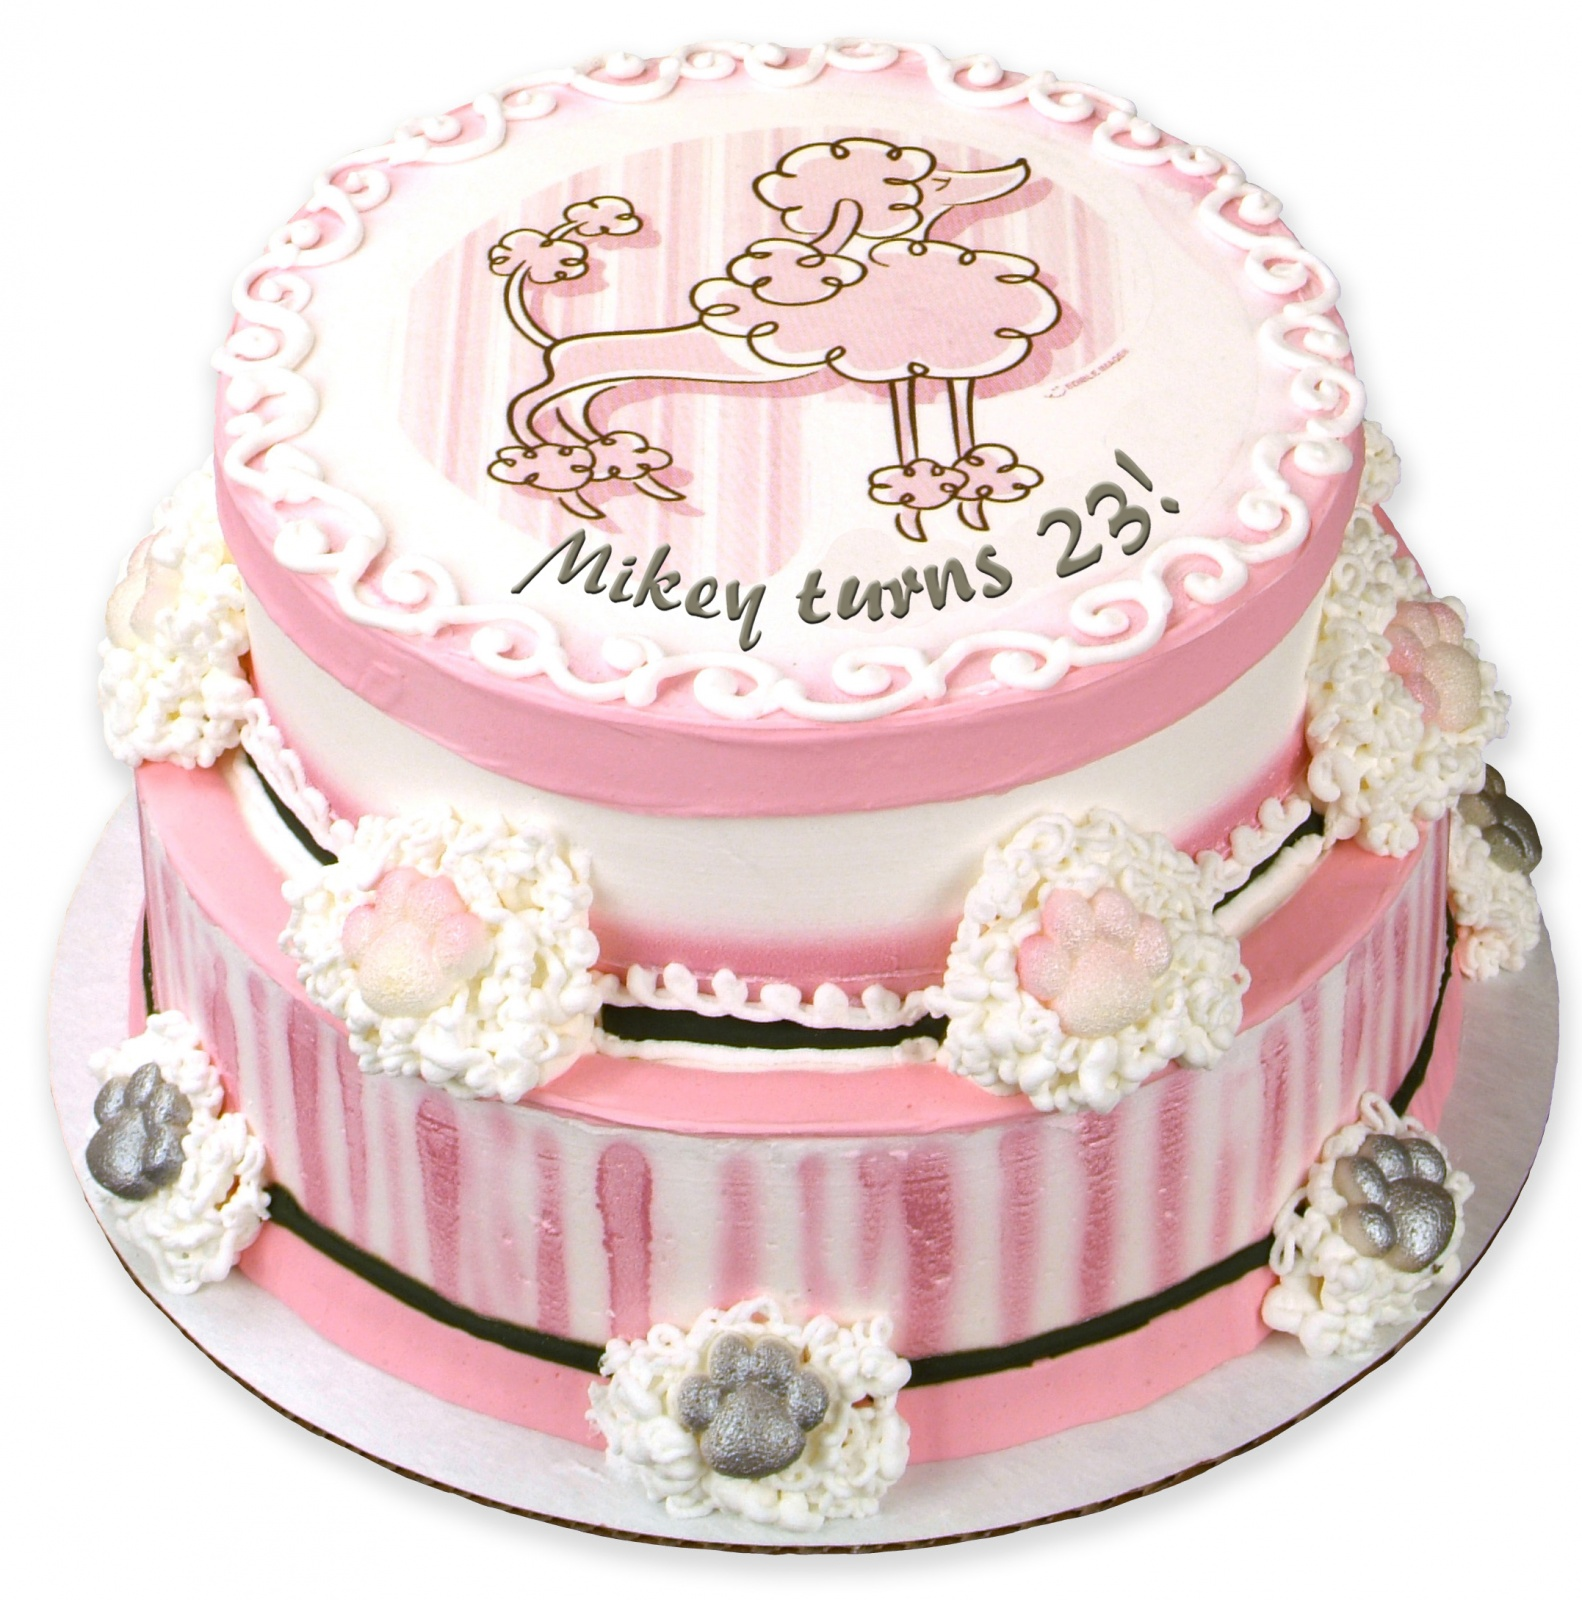 Click image for larger version  Name:birthday.jpg Views:172 Size:563.0 KB ID:1225